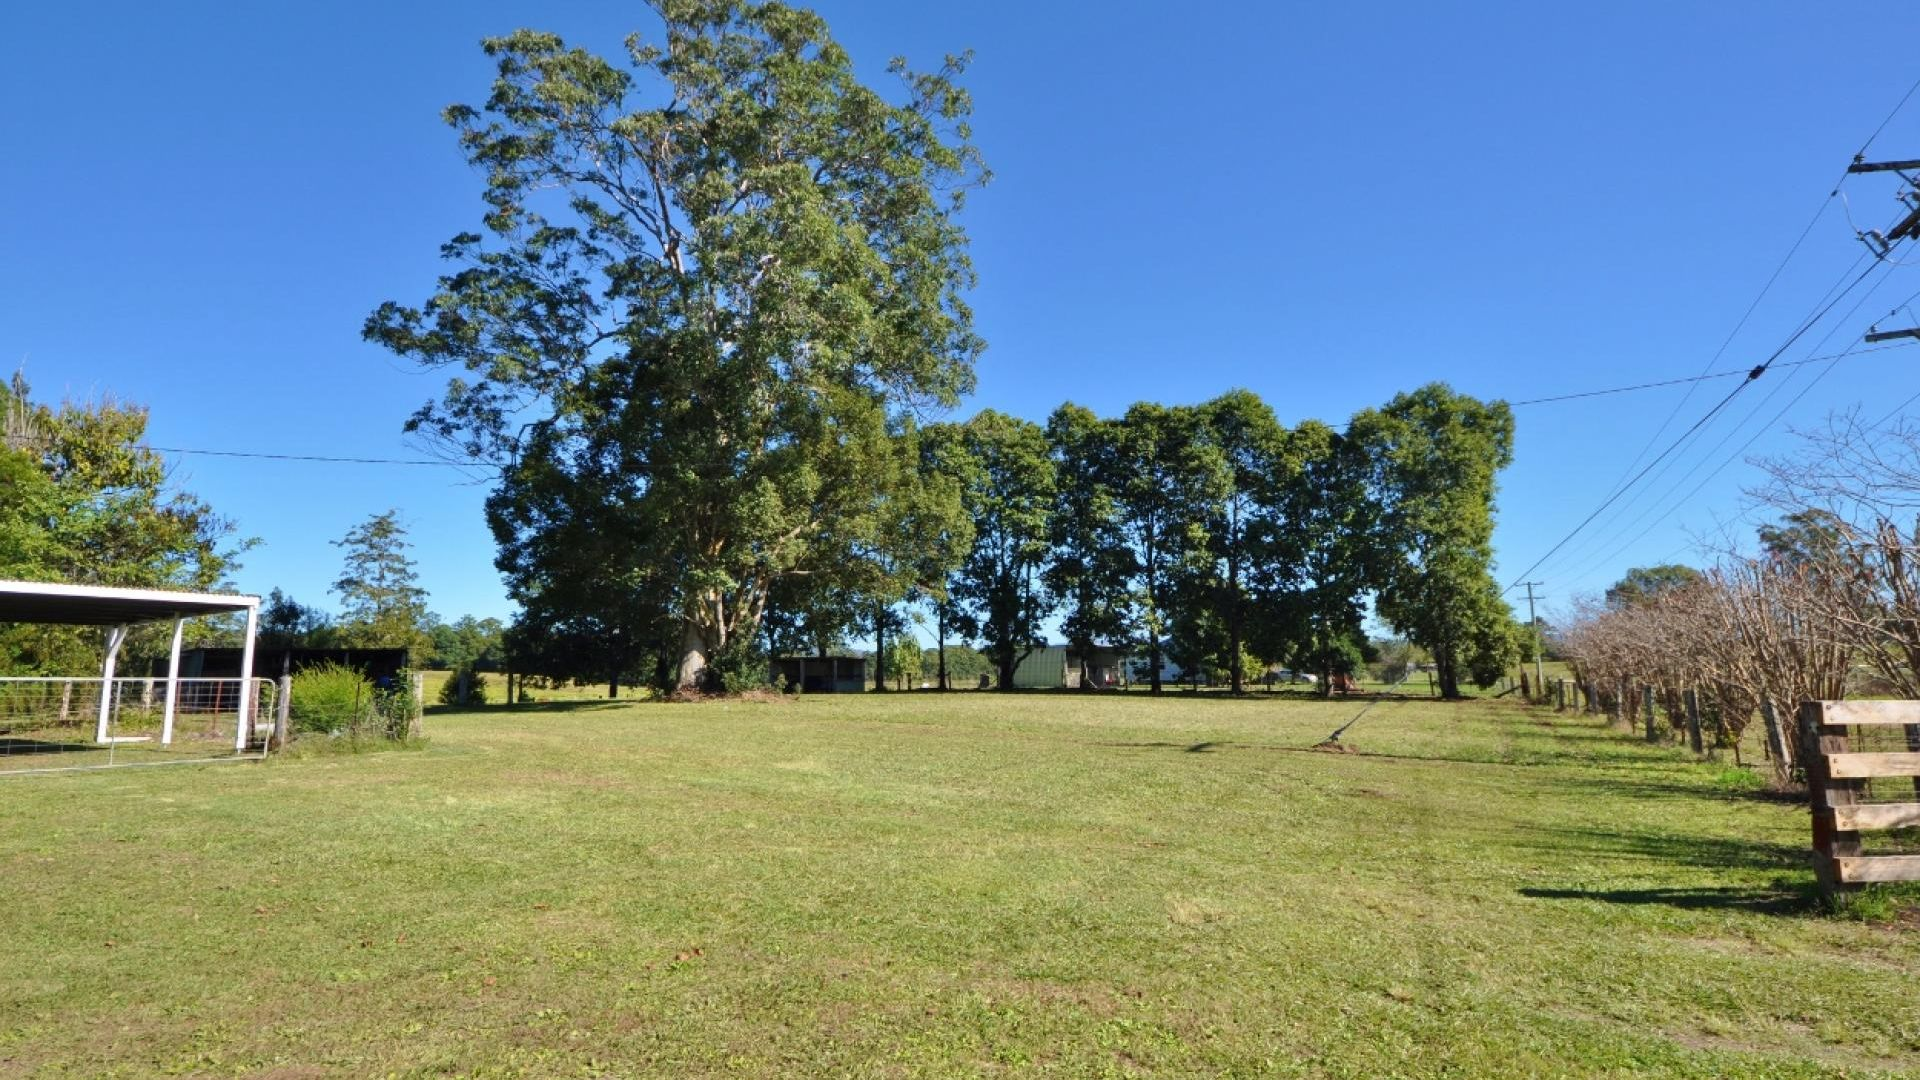 94 Grassy Road, Bowraville NSW 2449, Image 1